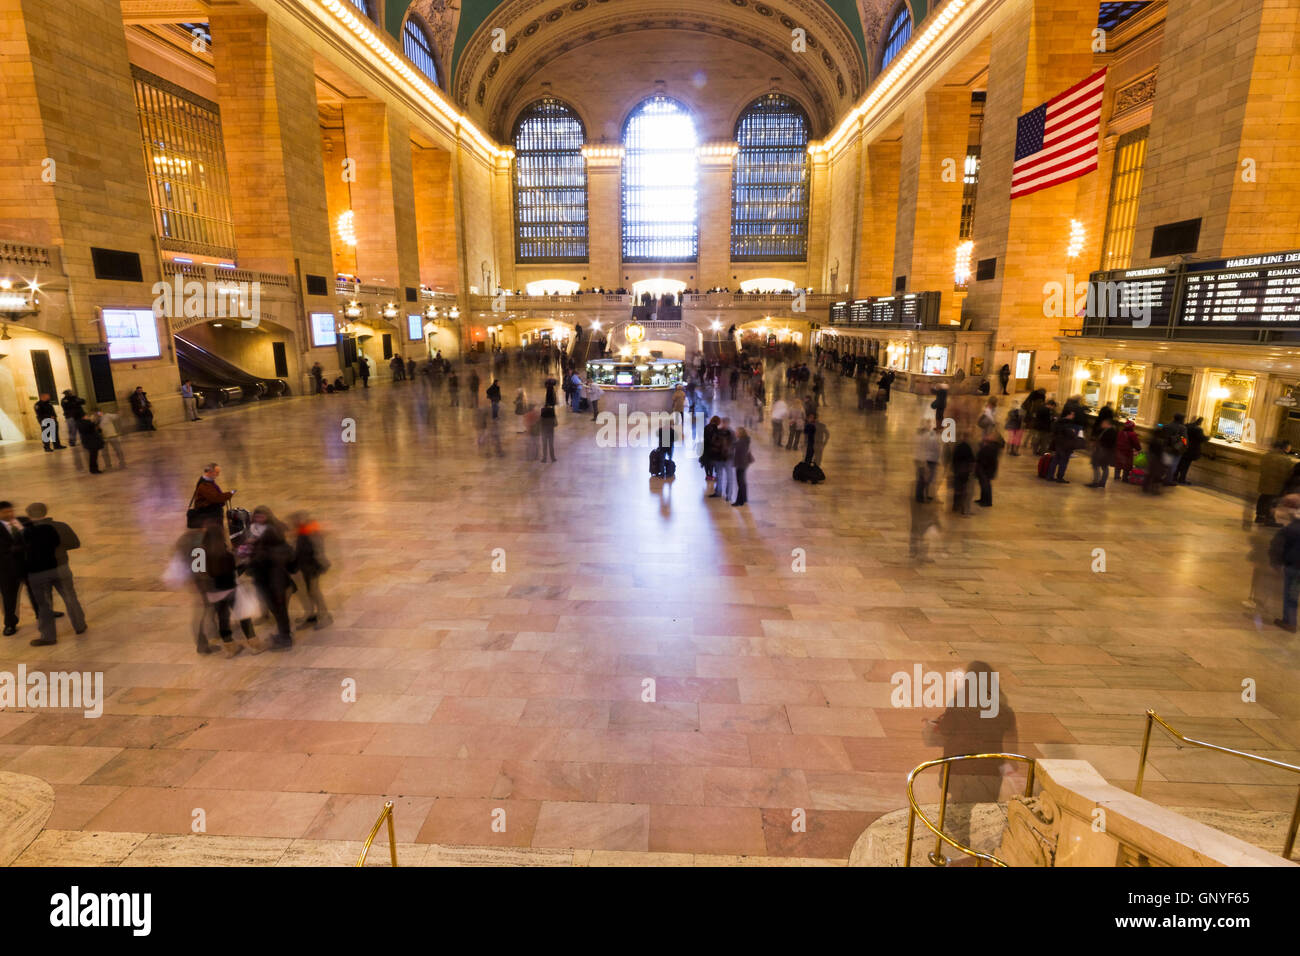 NEW YORK CITY, USA - NOVEMBER 16, 2012: Views of the historic Grand ...